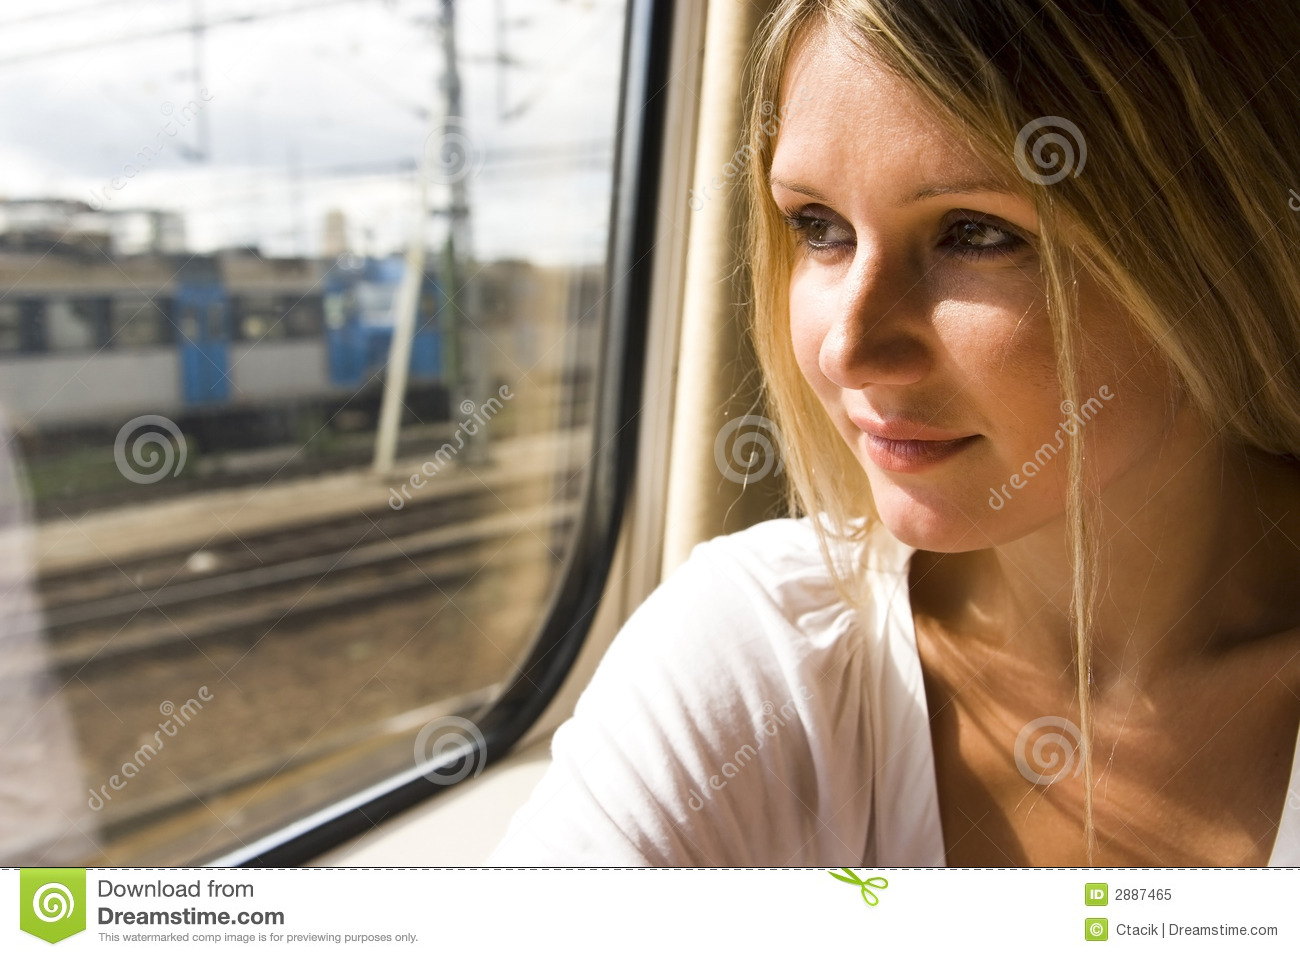 Young woman in vintage train